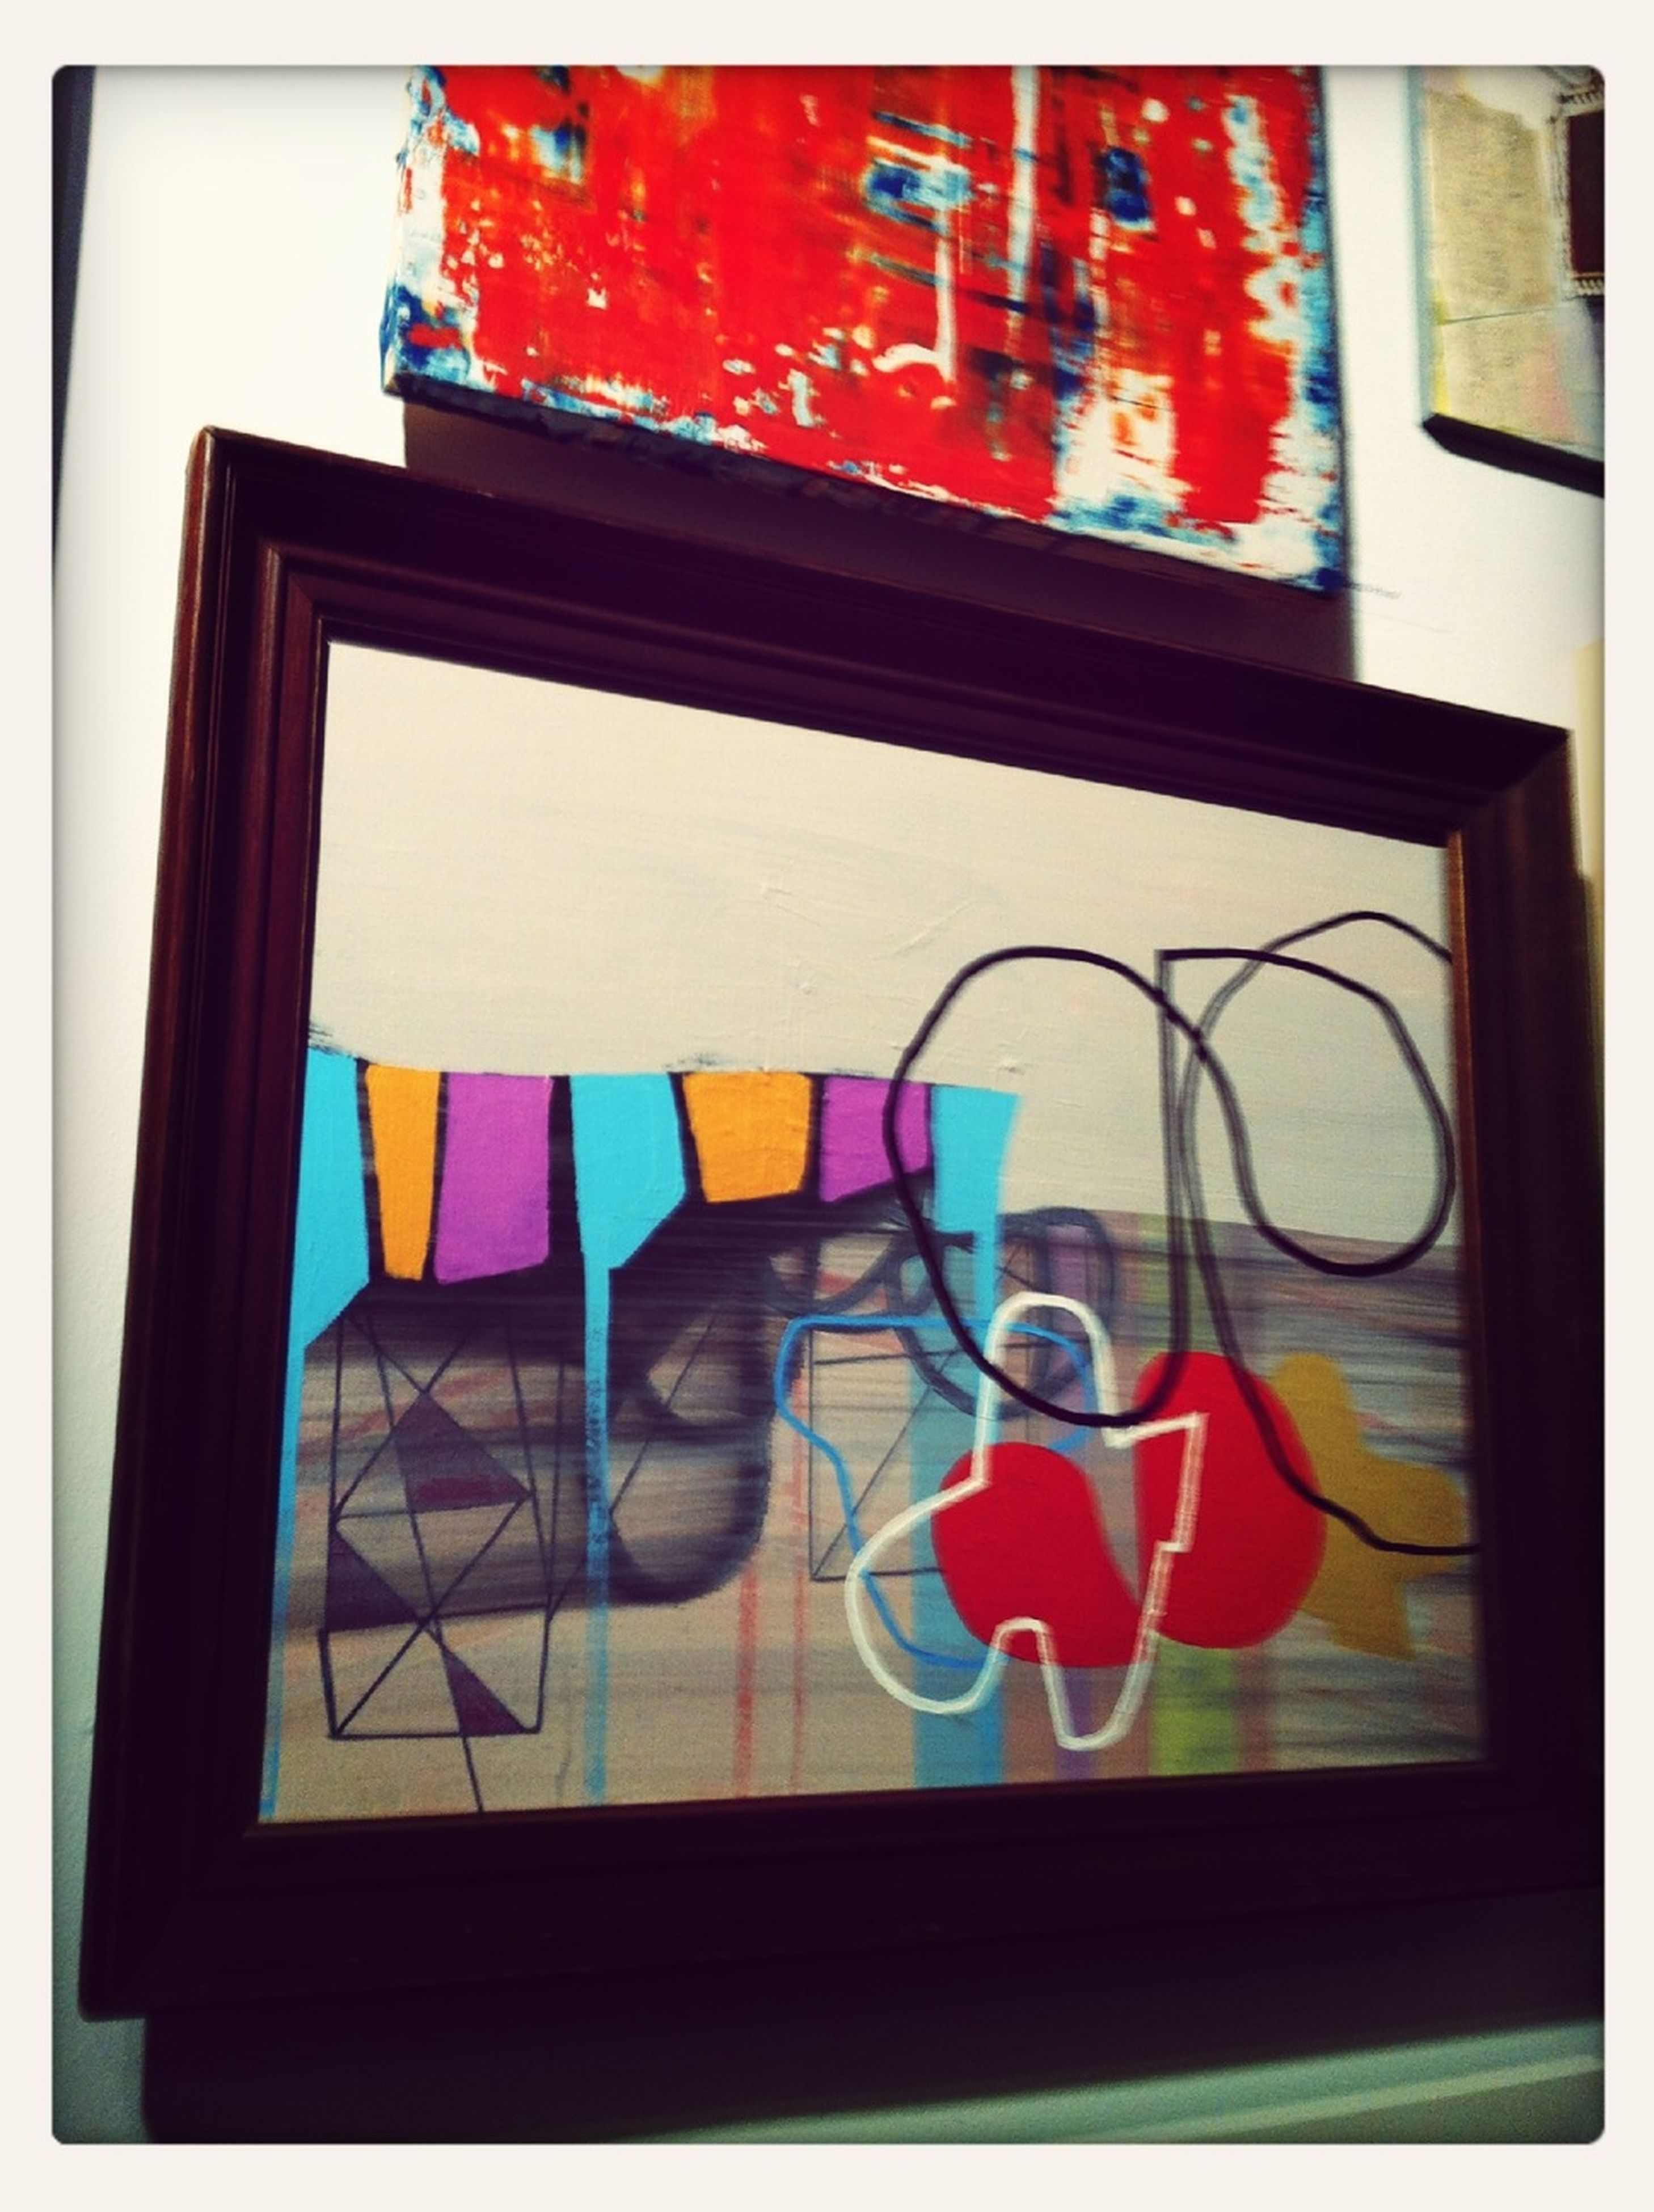 transfer print, multi colored, auto post production filter, window, indoors, built structure, architecture, building exterior, red, glass - material, hanging, art and craft, art, childhood, day, no people, reflection, variation, still life, creativity